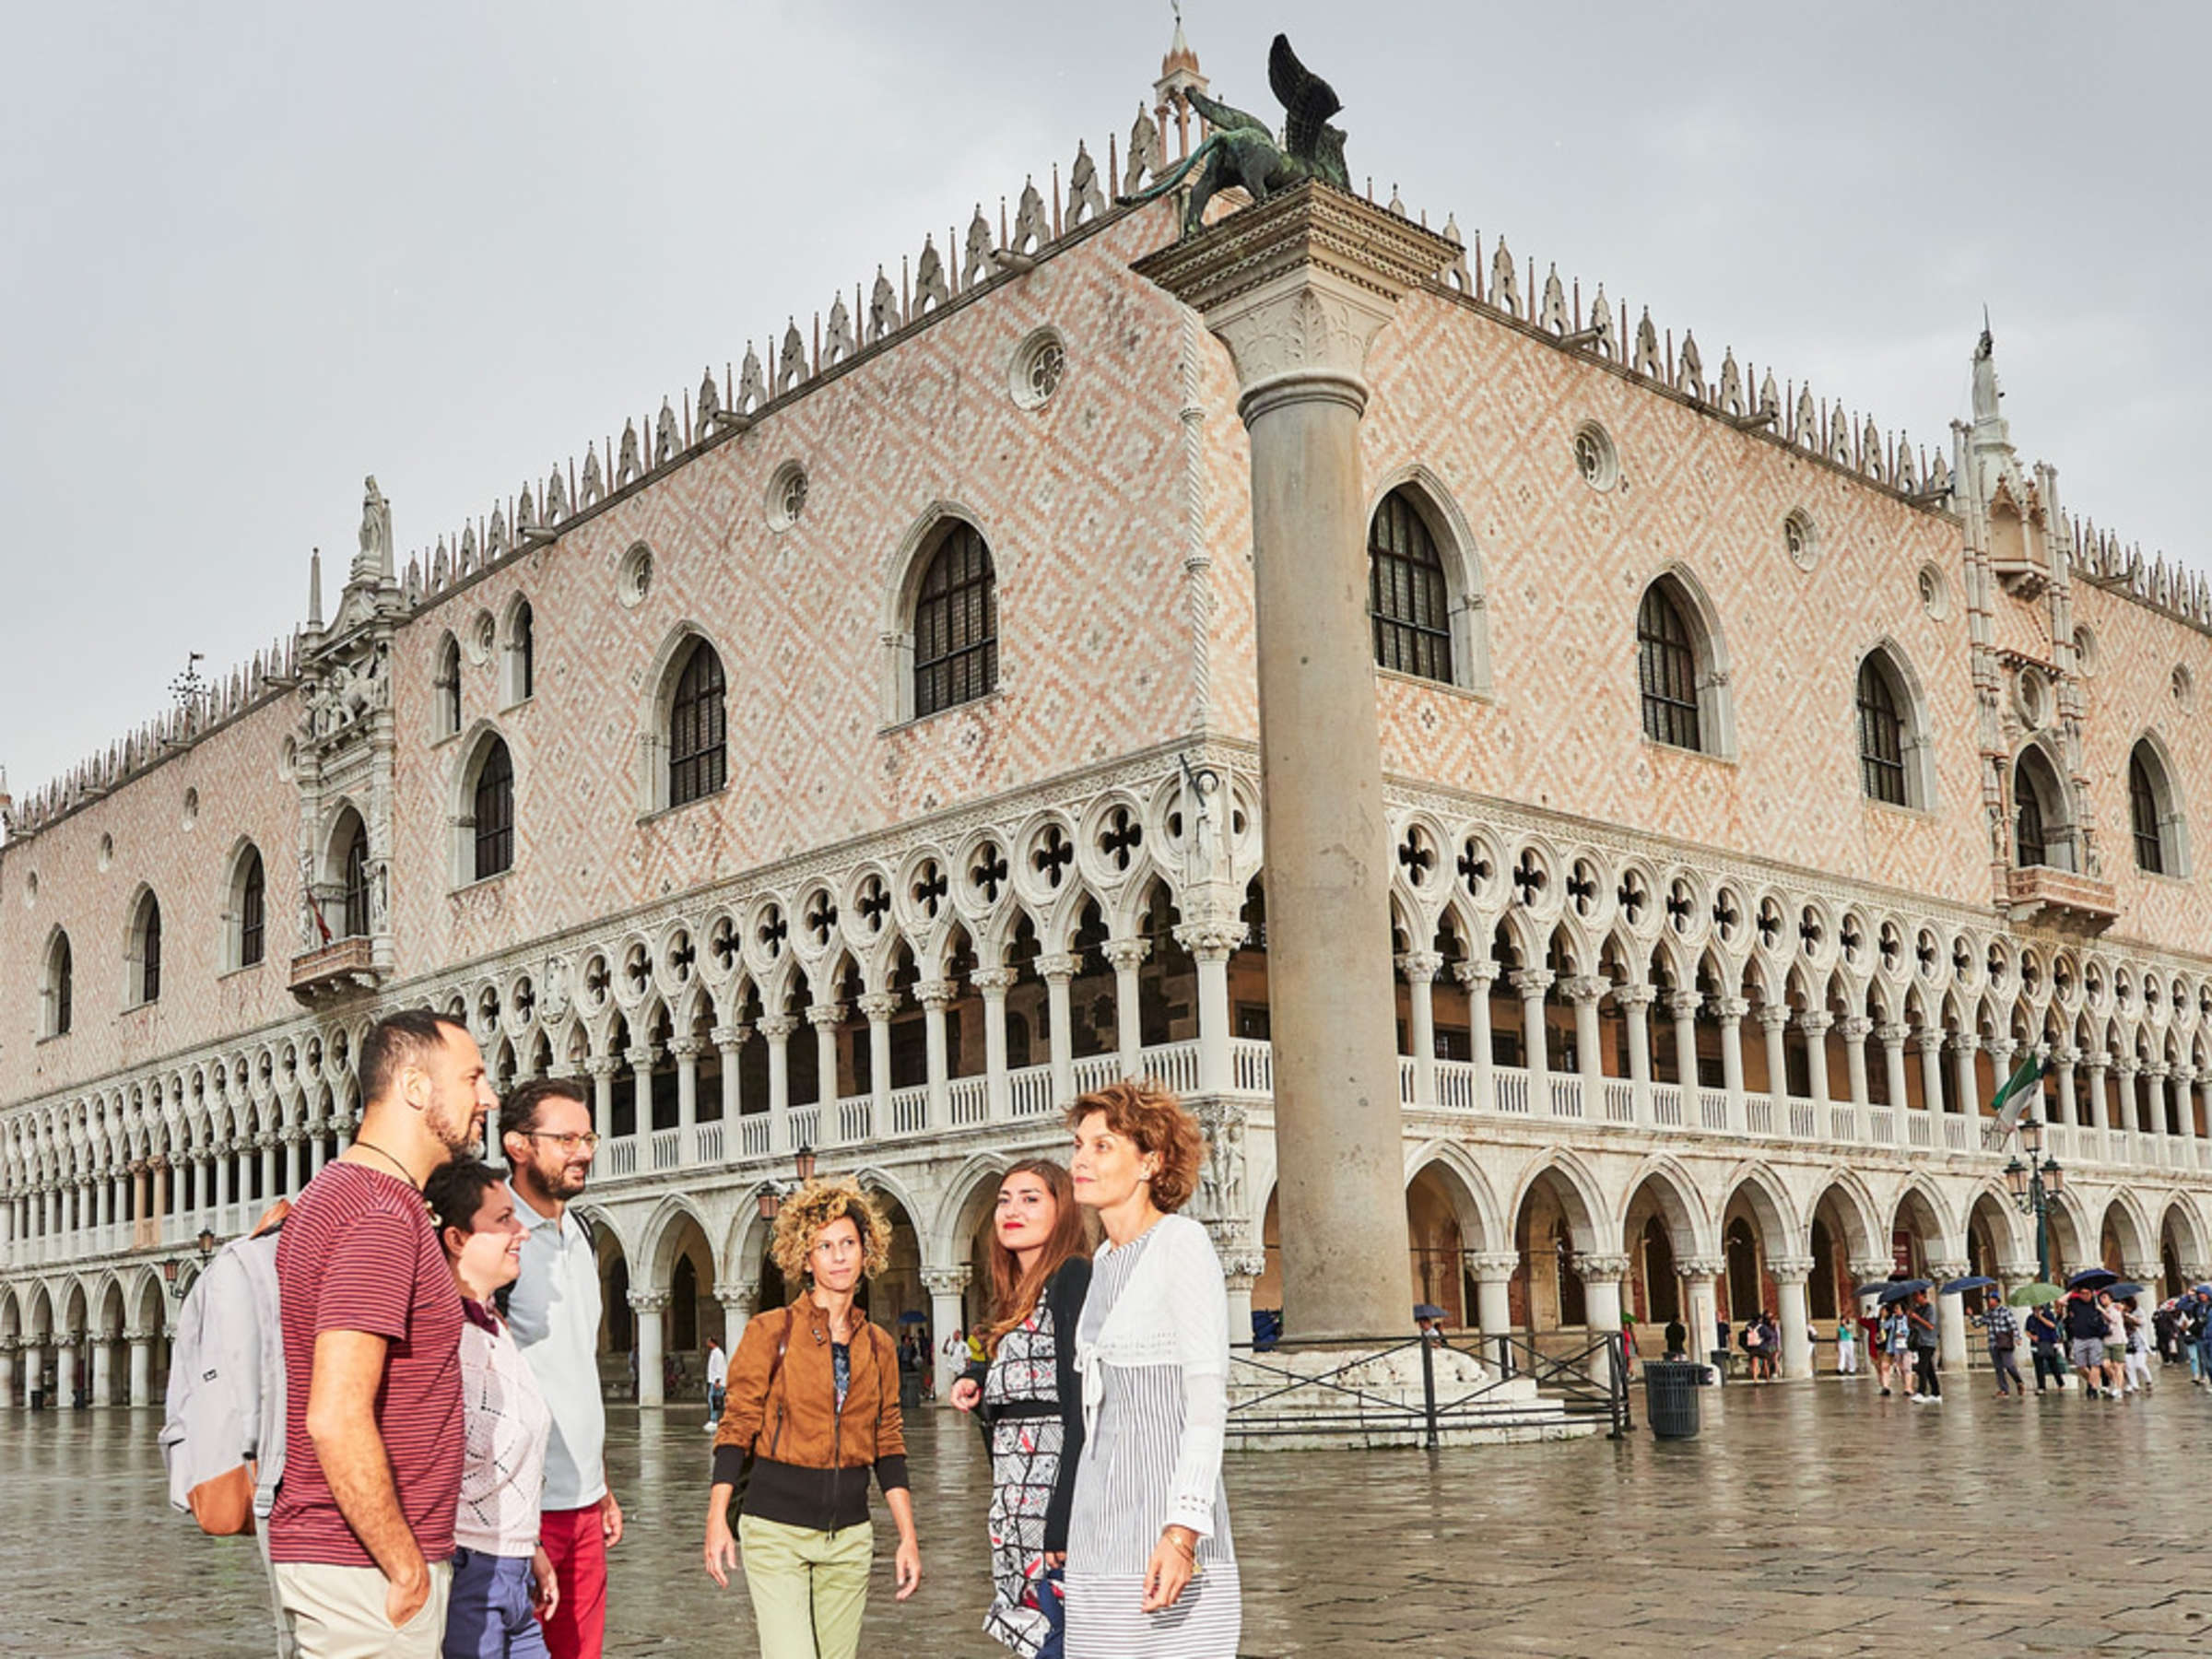 Doge's Palace Tour: Politics and Justice in Venice